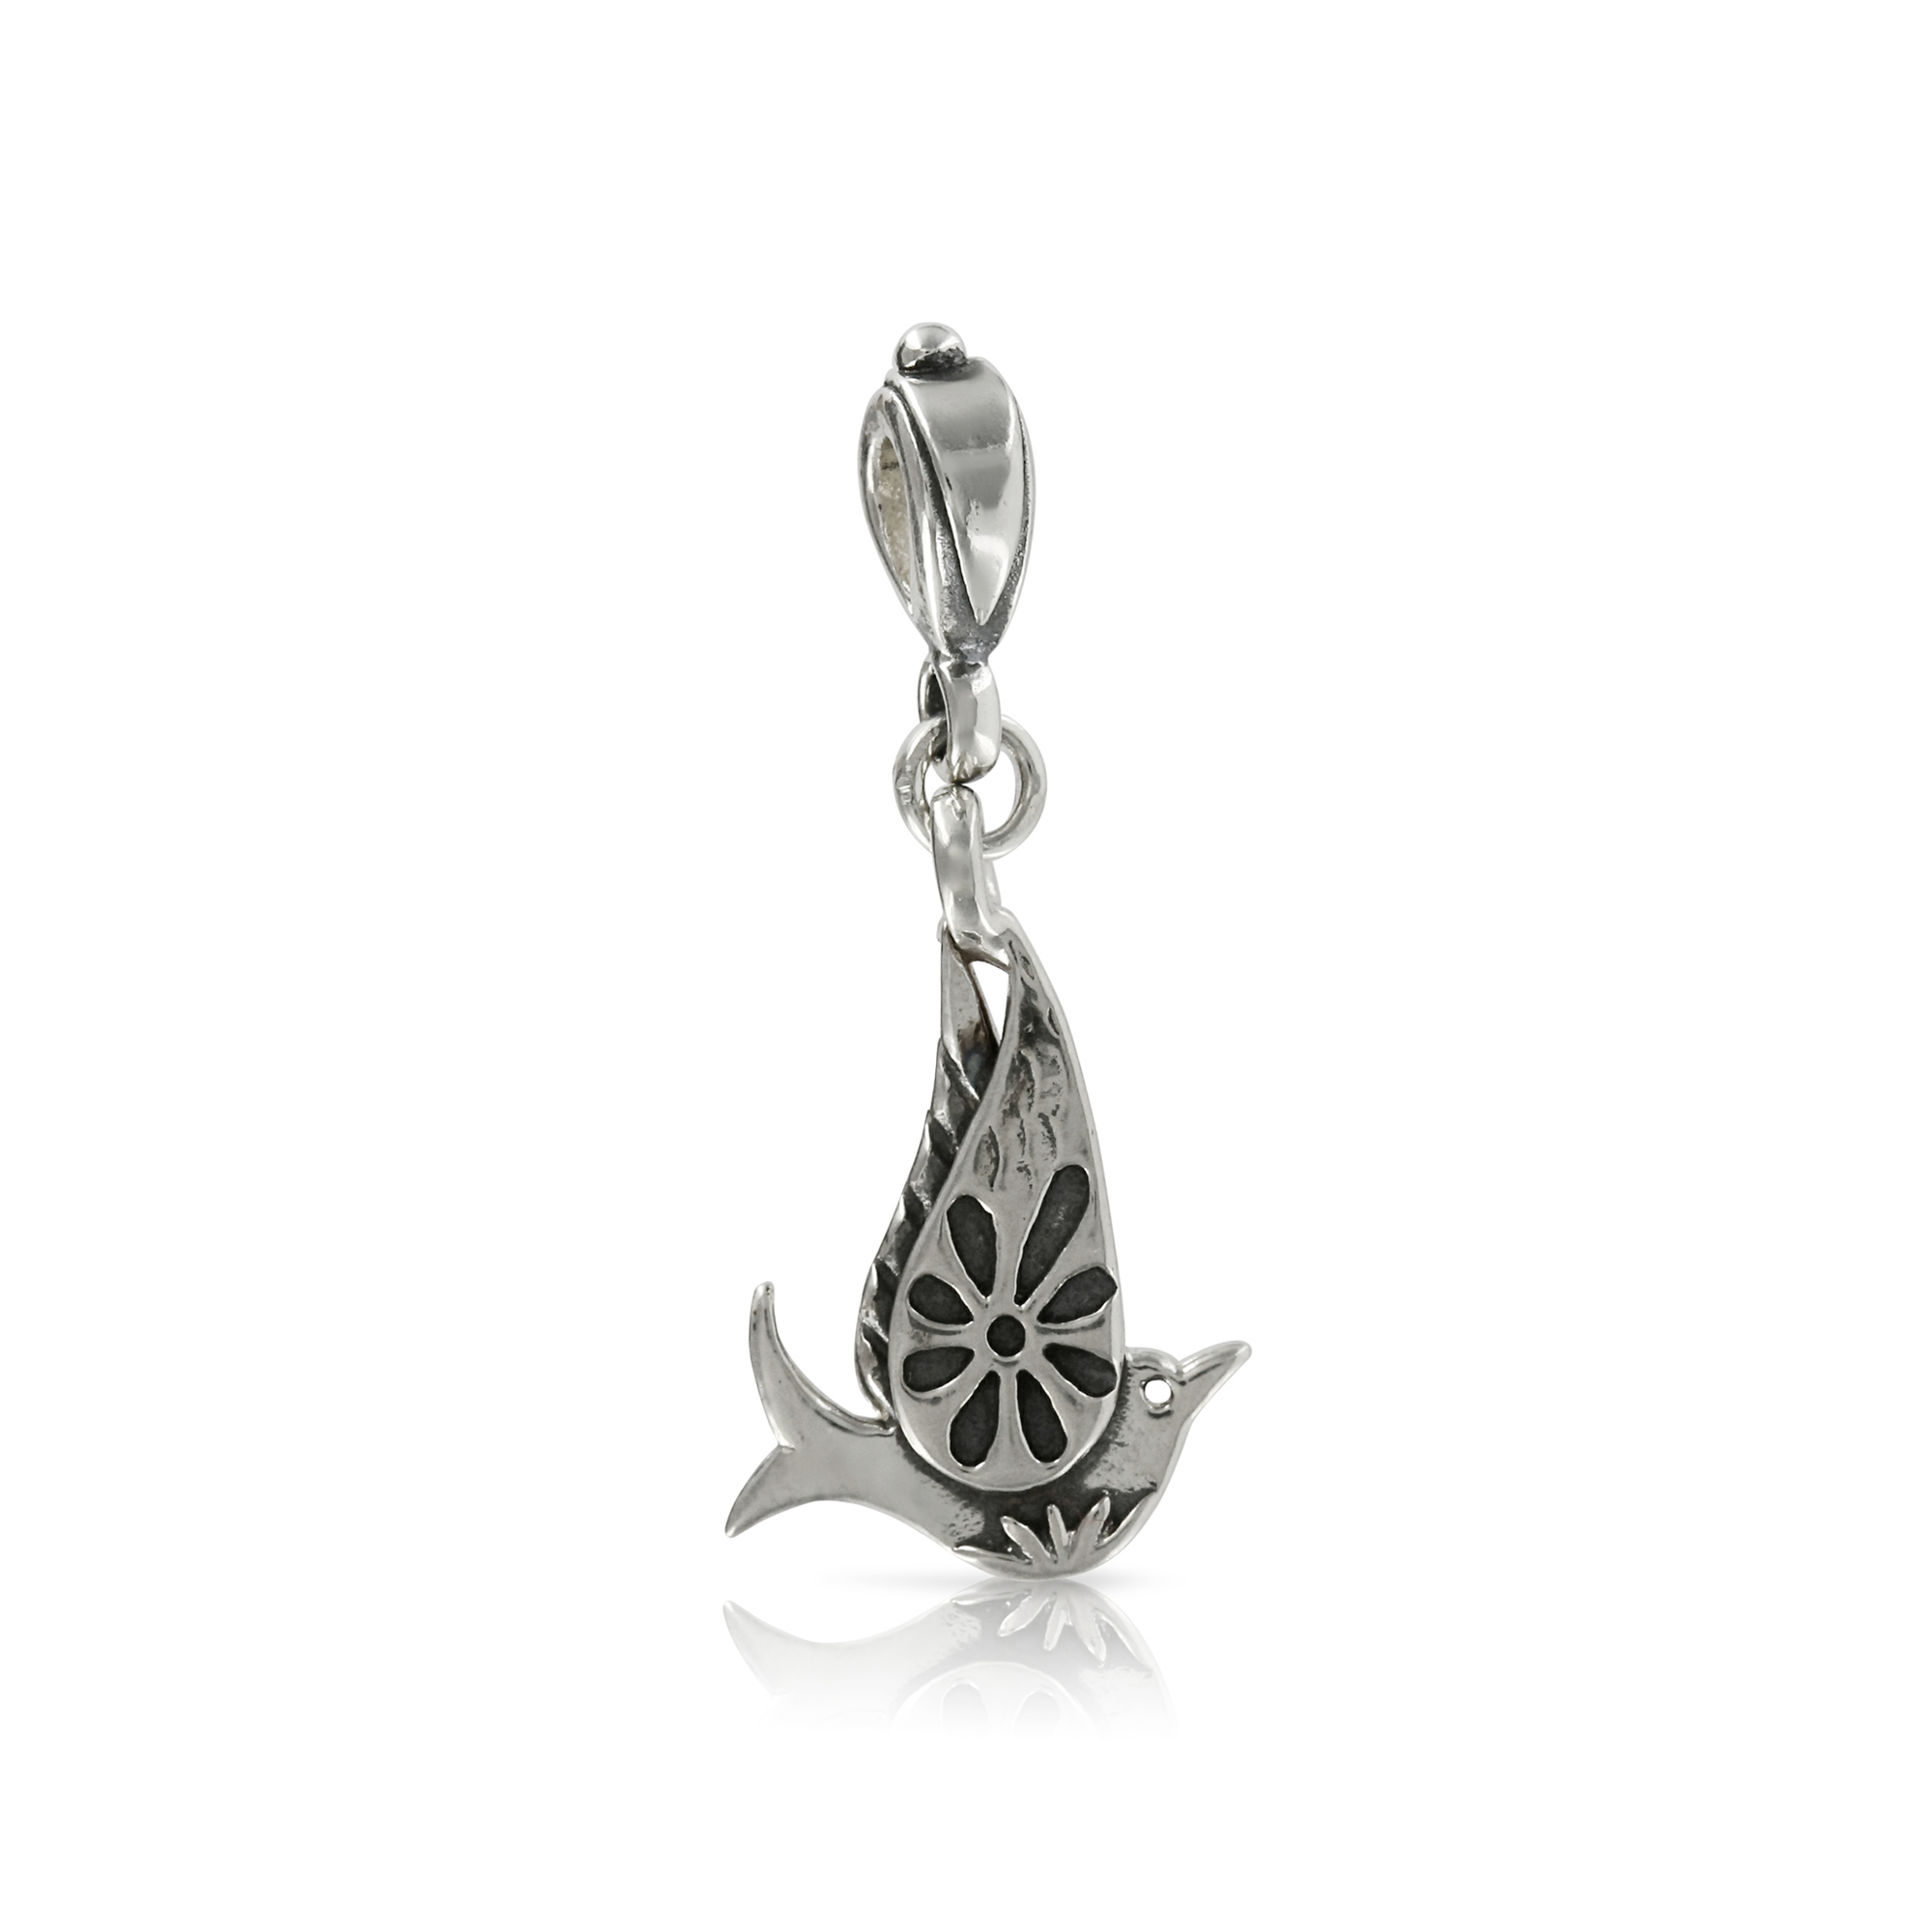 Small_Silver_Bird_Pendant_by_Prey_Jewellery